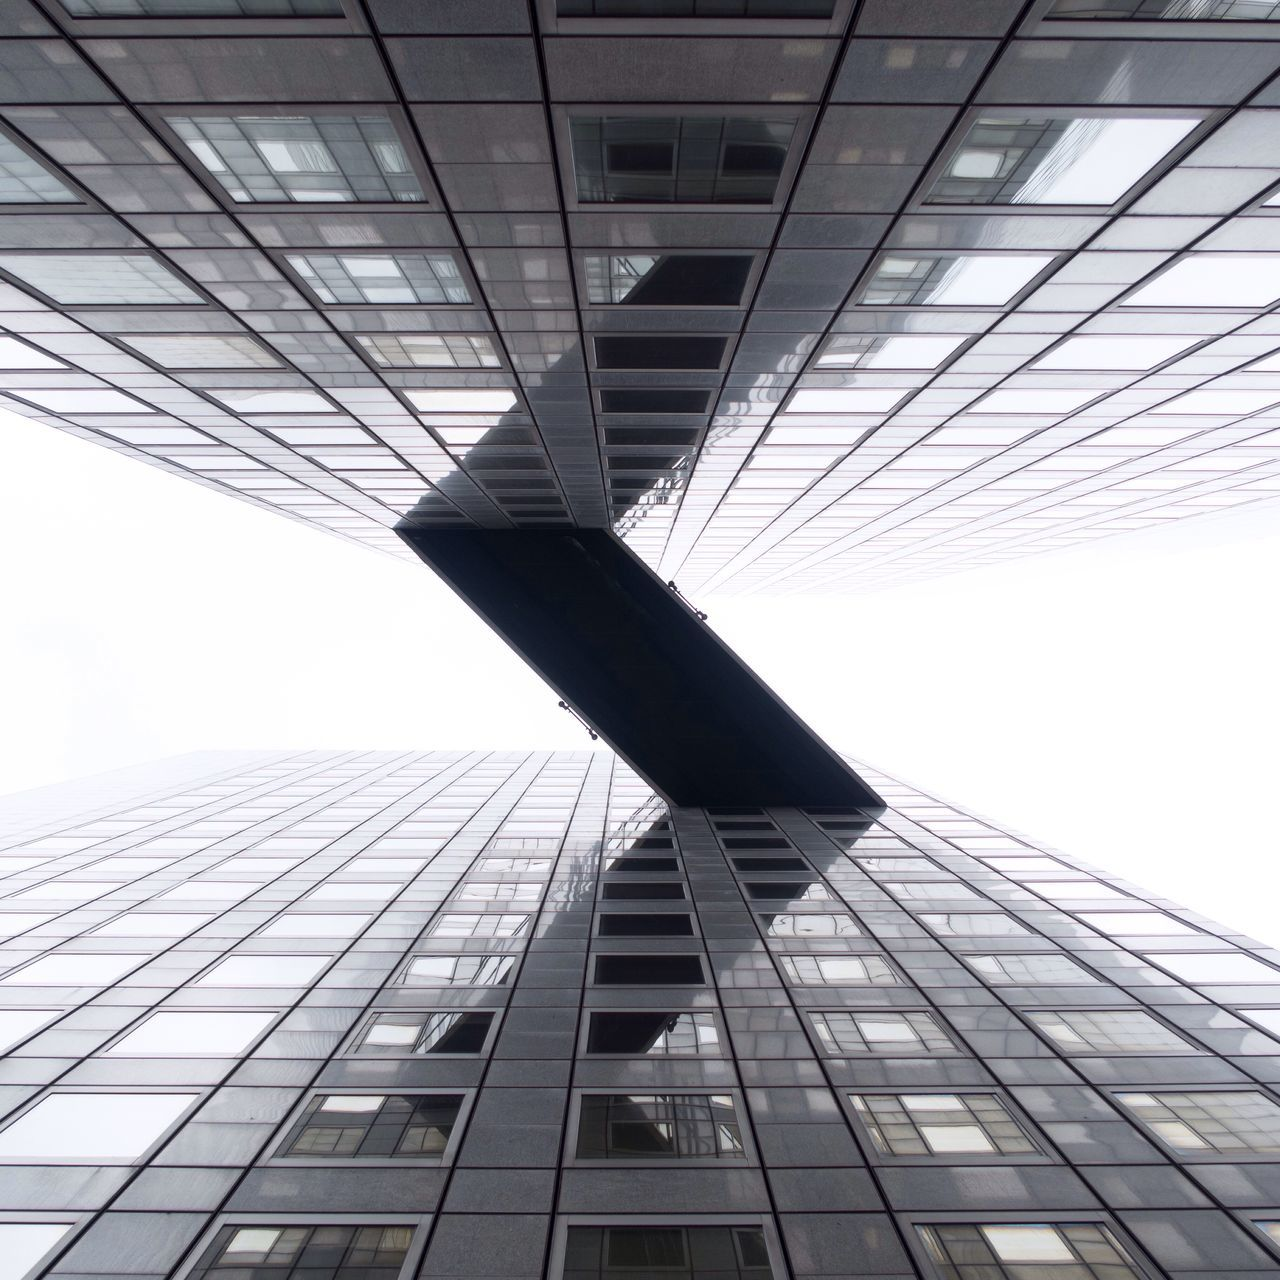 LOW ANGLE VIEW OF TALL BUILDING